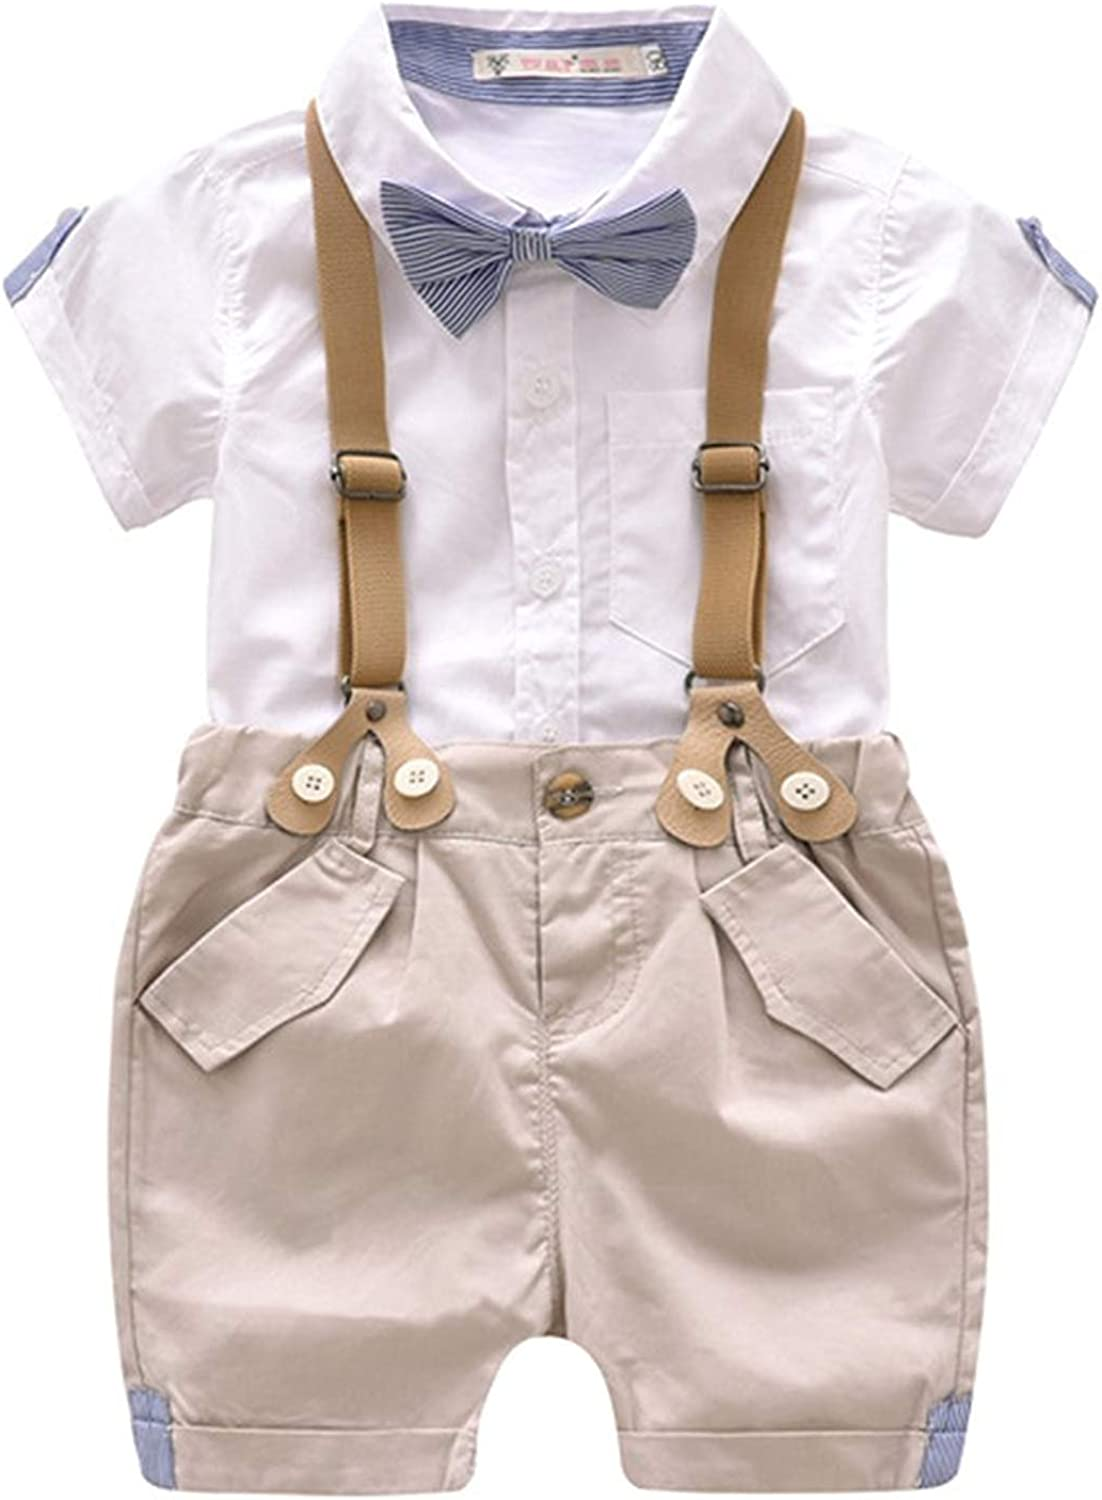 Toddler Boys 2 Deluxe Piece Gentleman Free shipping Outfit Shirt+ S Bid Polo Bowtie+